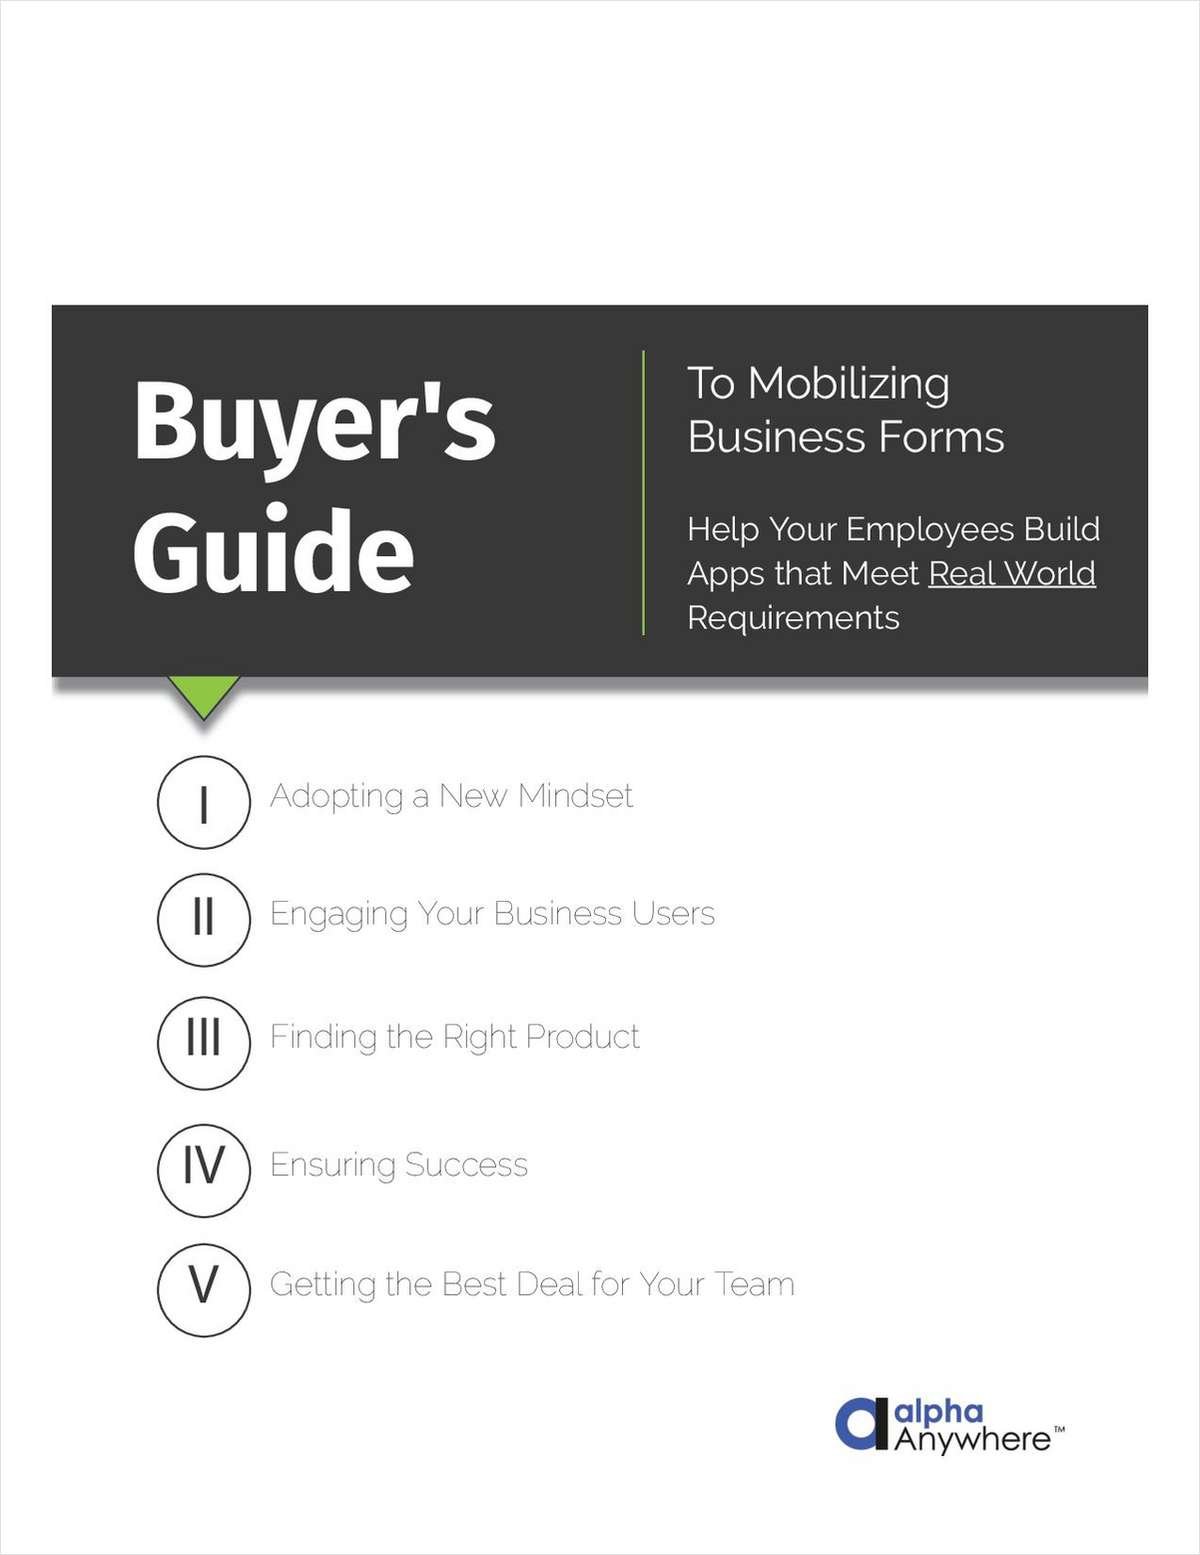 Buyer's Guide to Mobilizing Business Forms